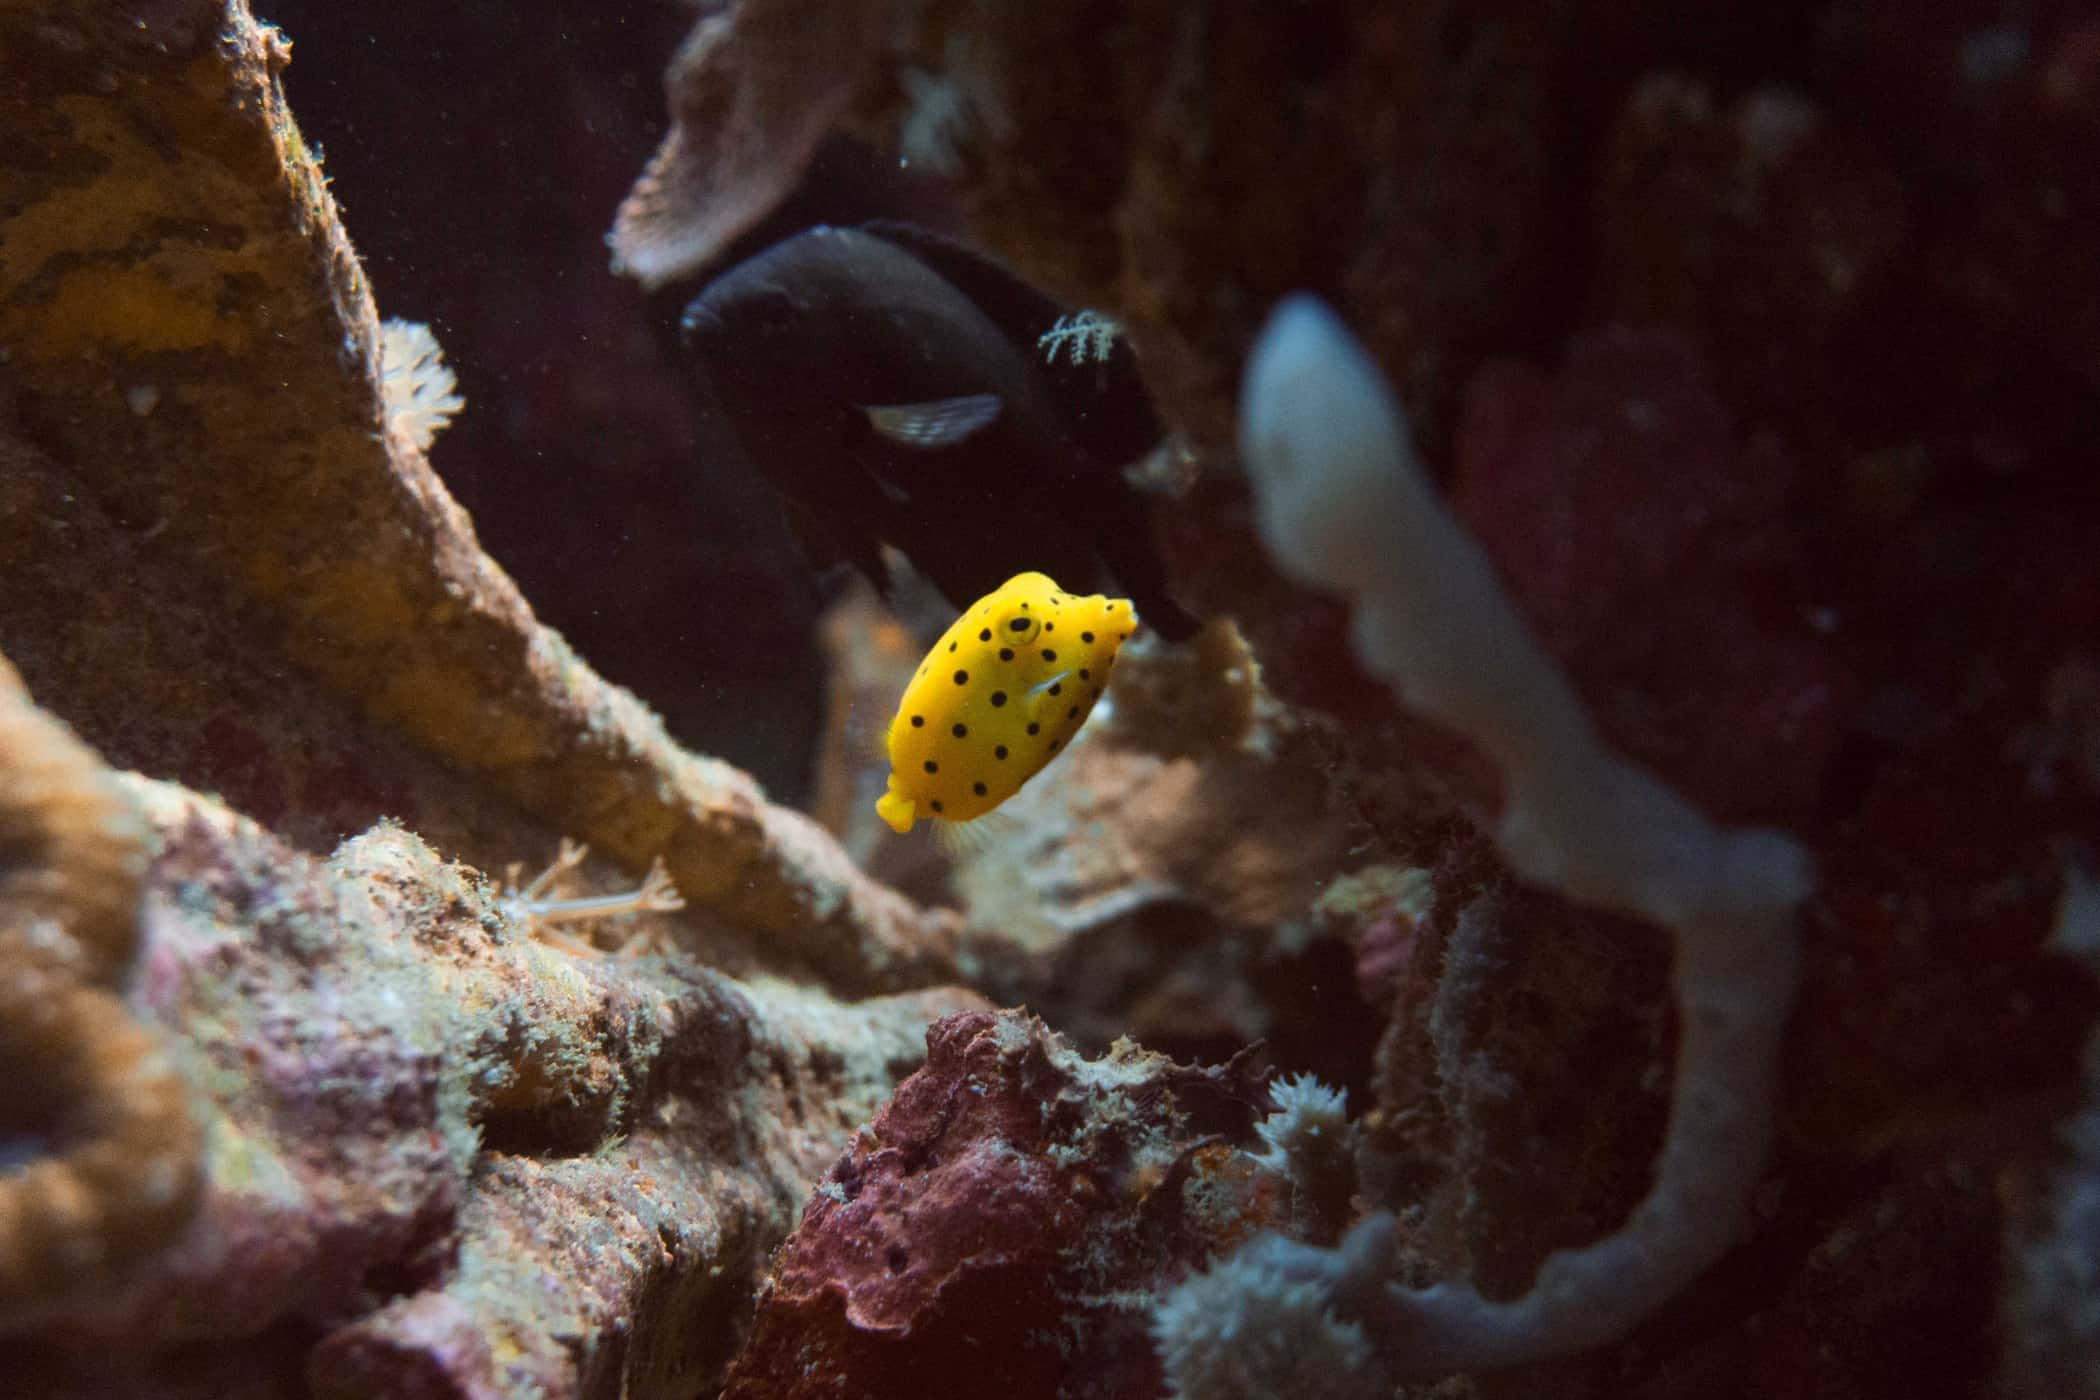 A Yellow Puffer Fish at Manta Point, Nusa Lembongan Diving